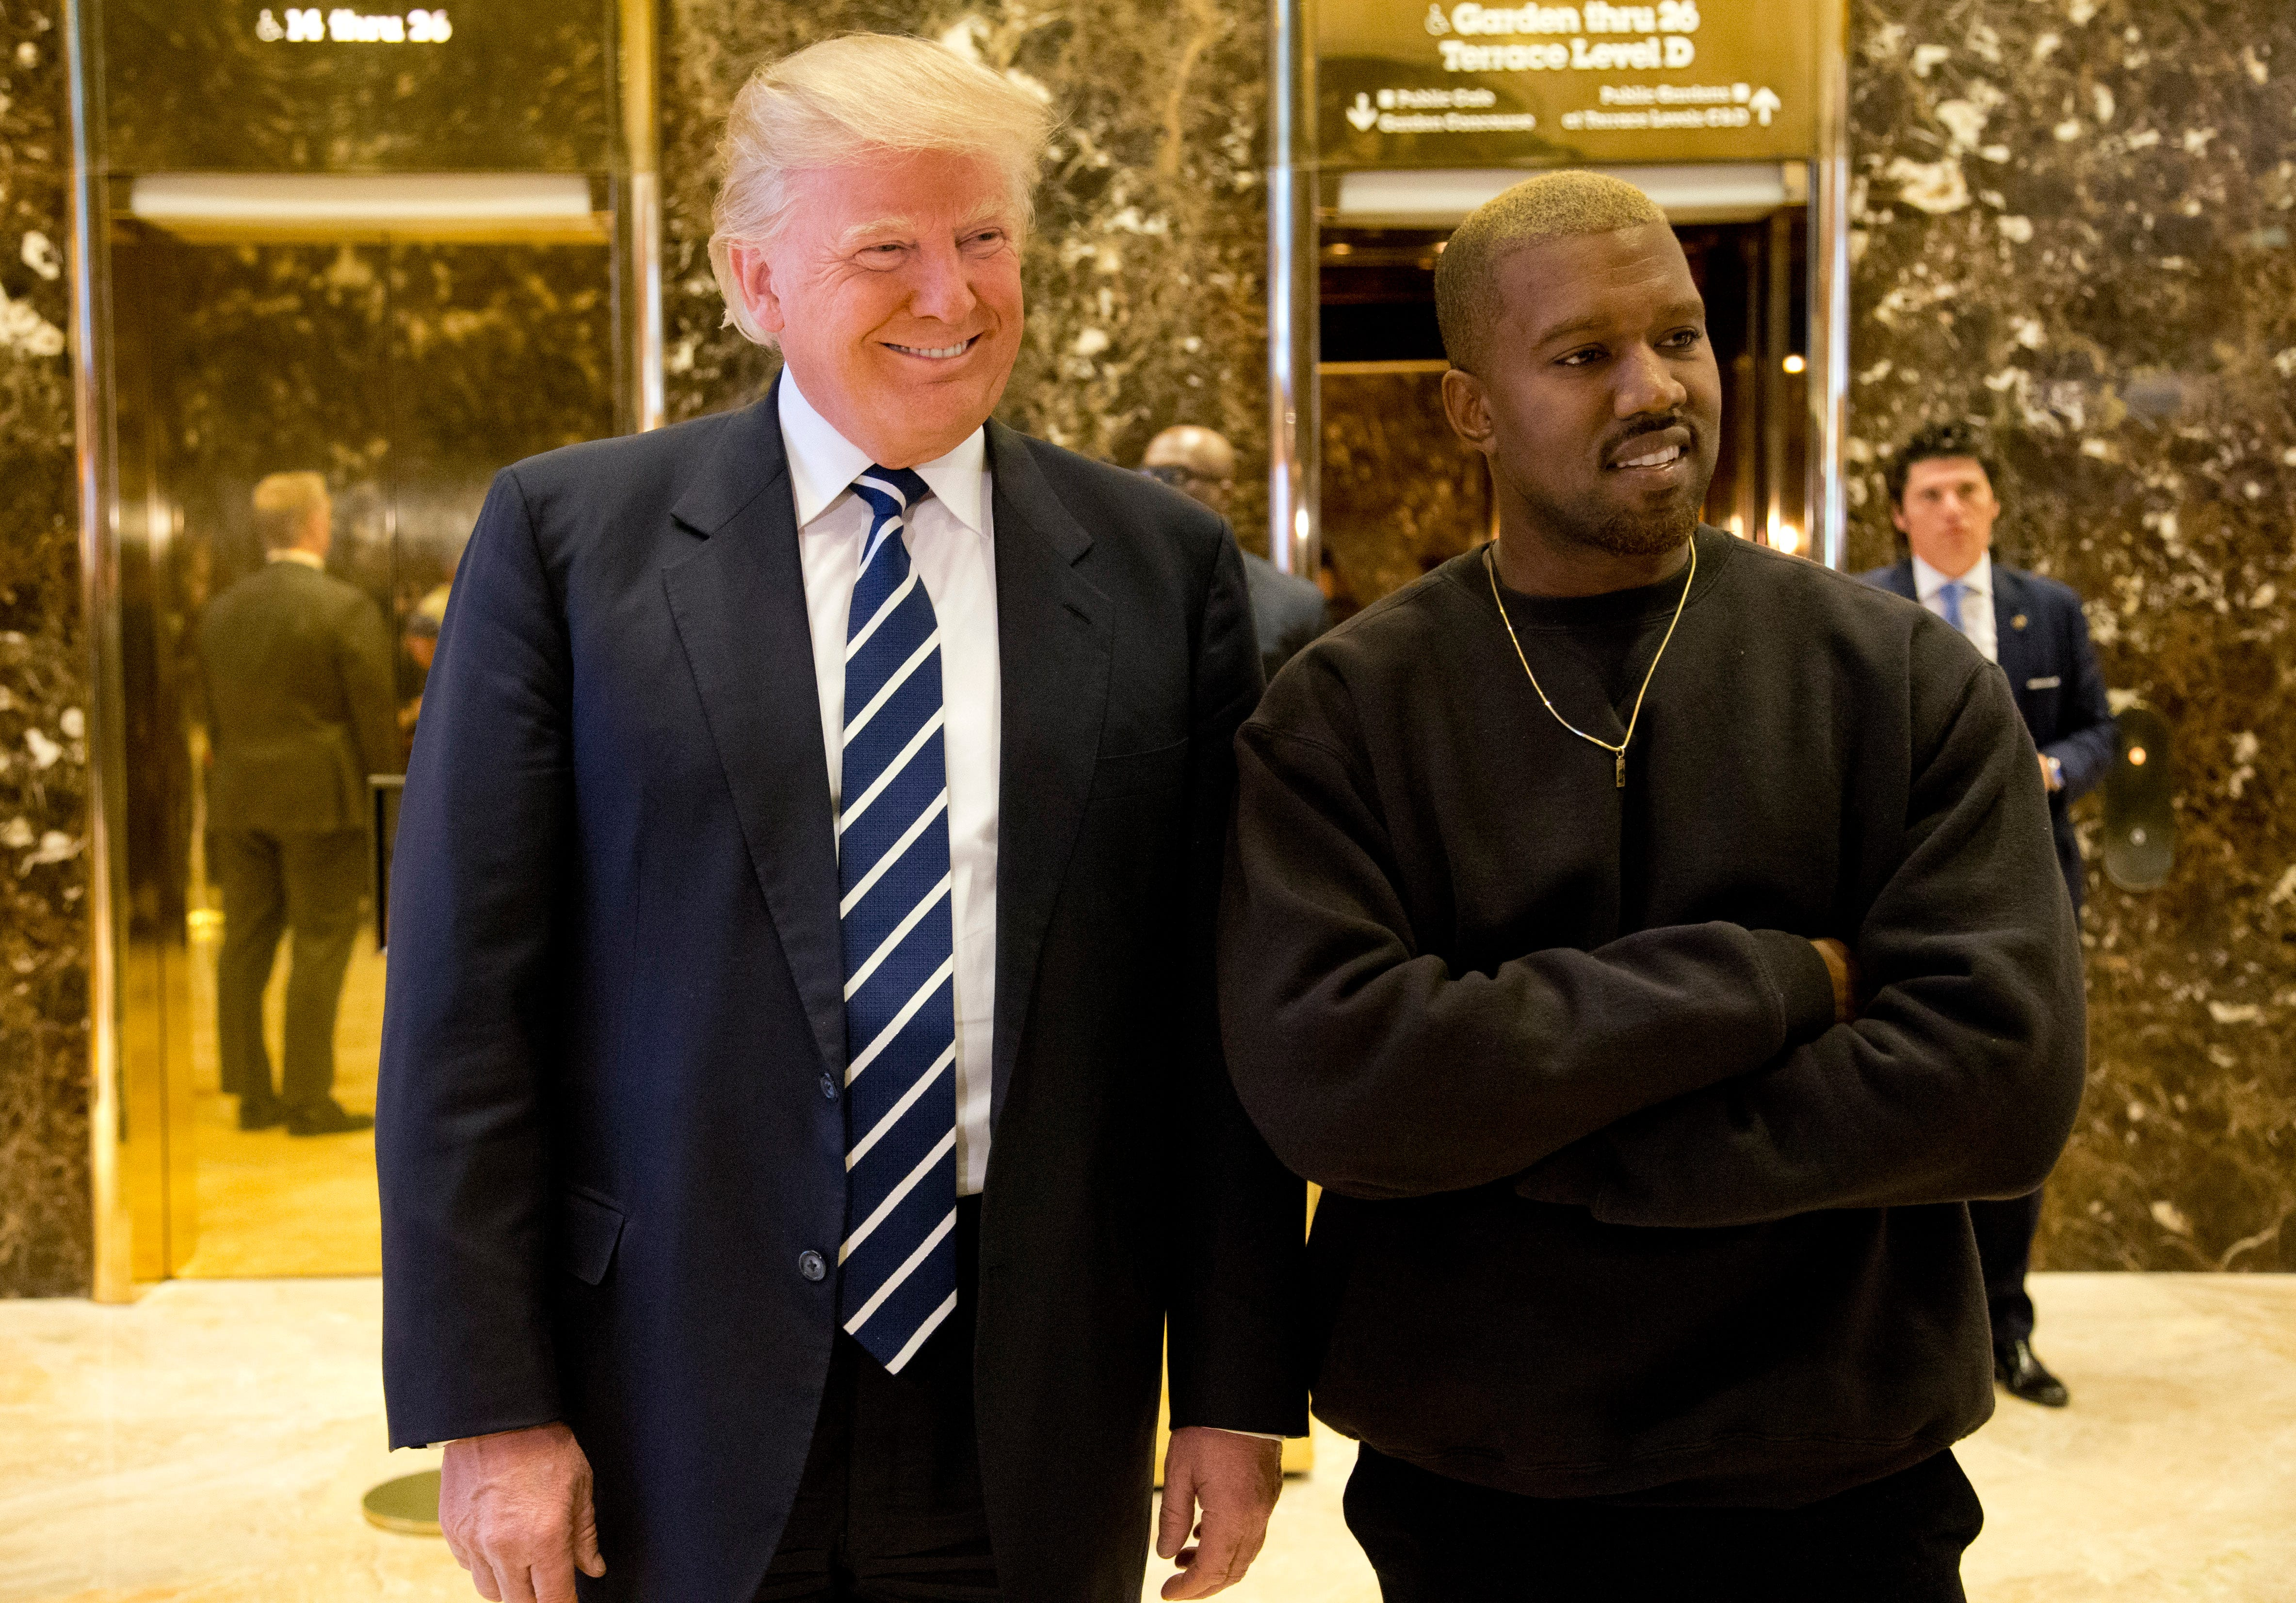 Kanye West goes silent when Jimmy Kimmel asks why he thinks Trump cares about black people